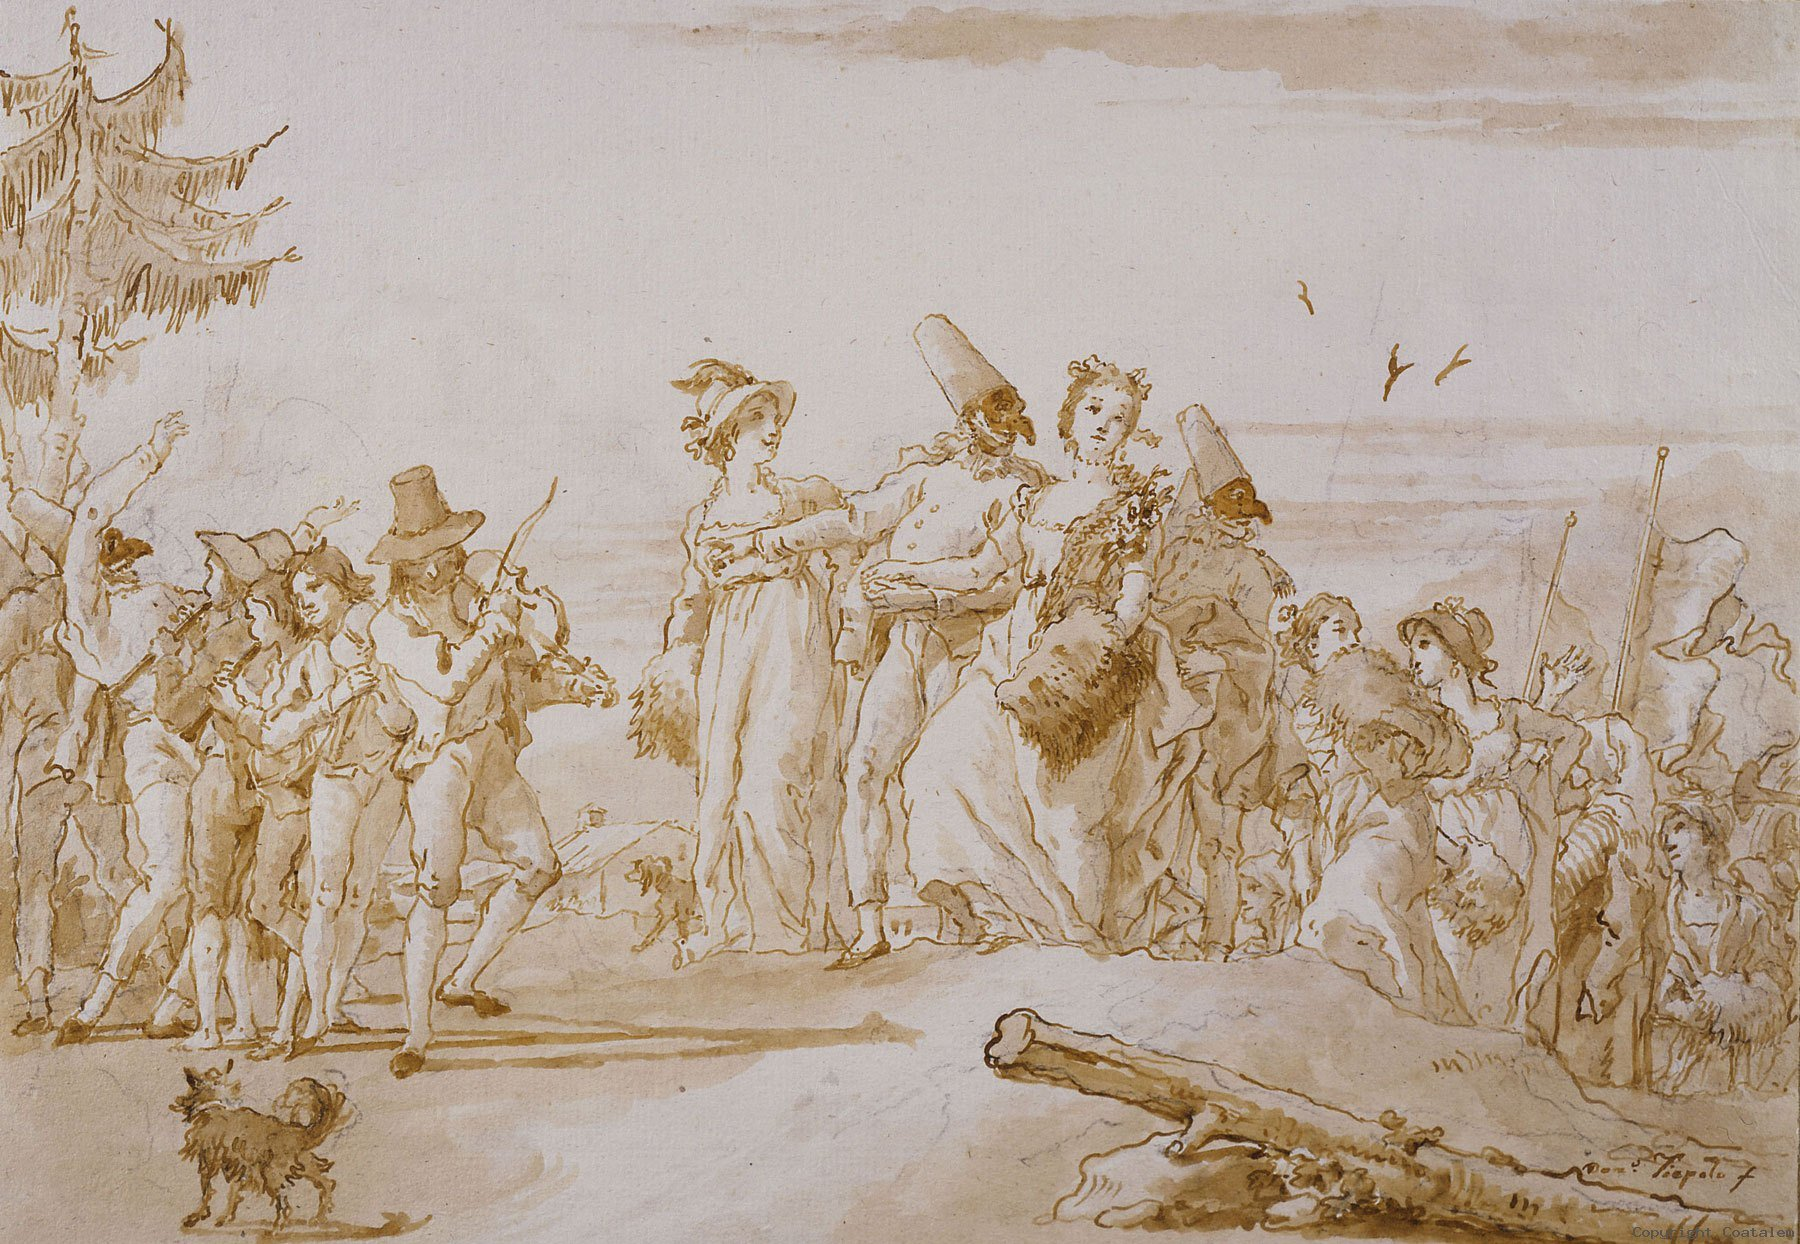 The Bridal Procession of Punchinello's Parents, drawing by Domenico Tiepolo